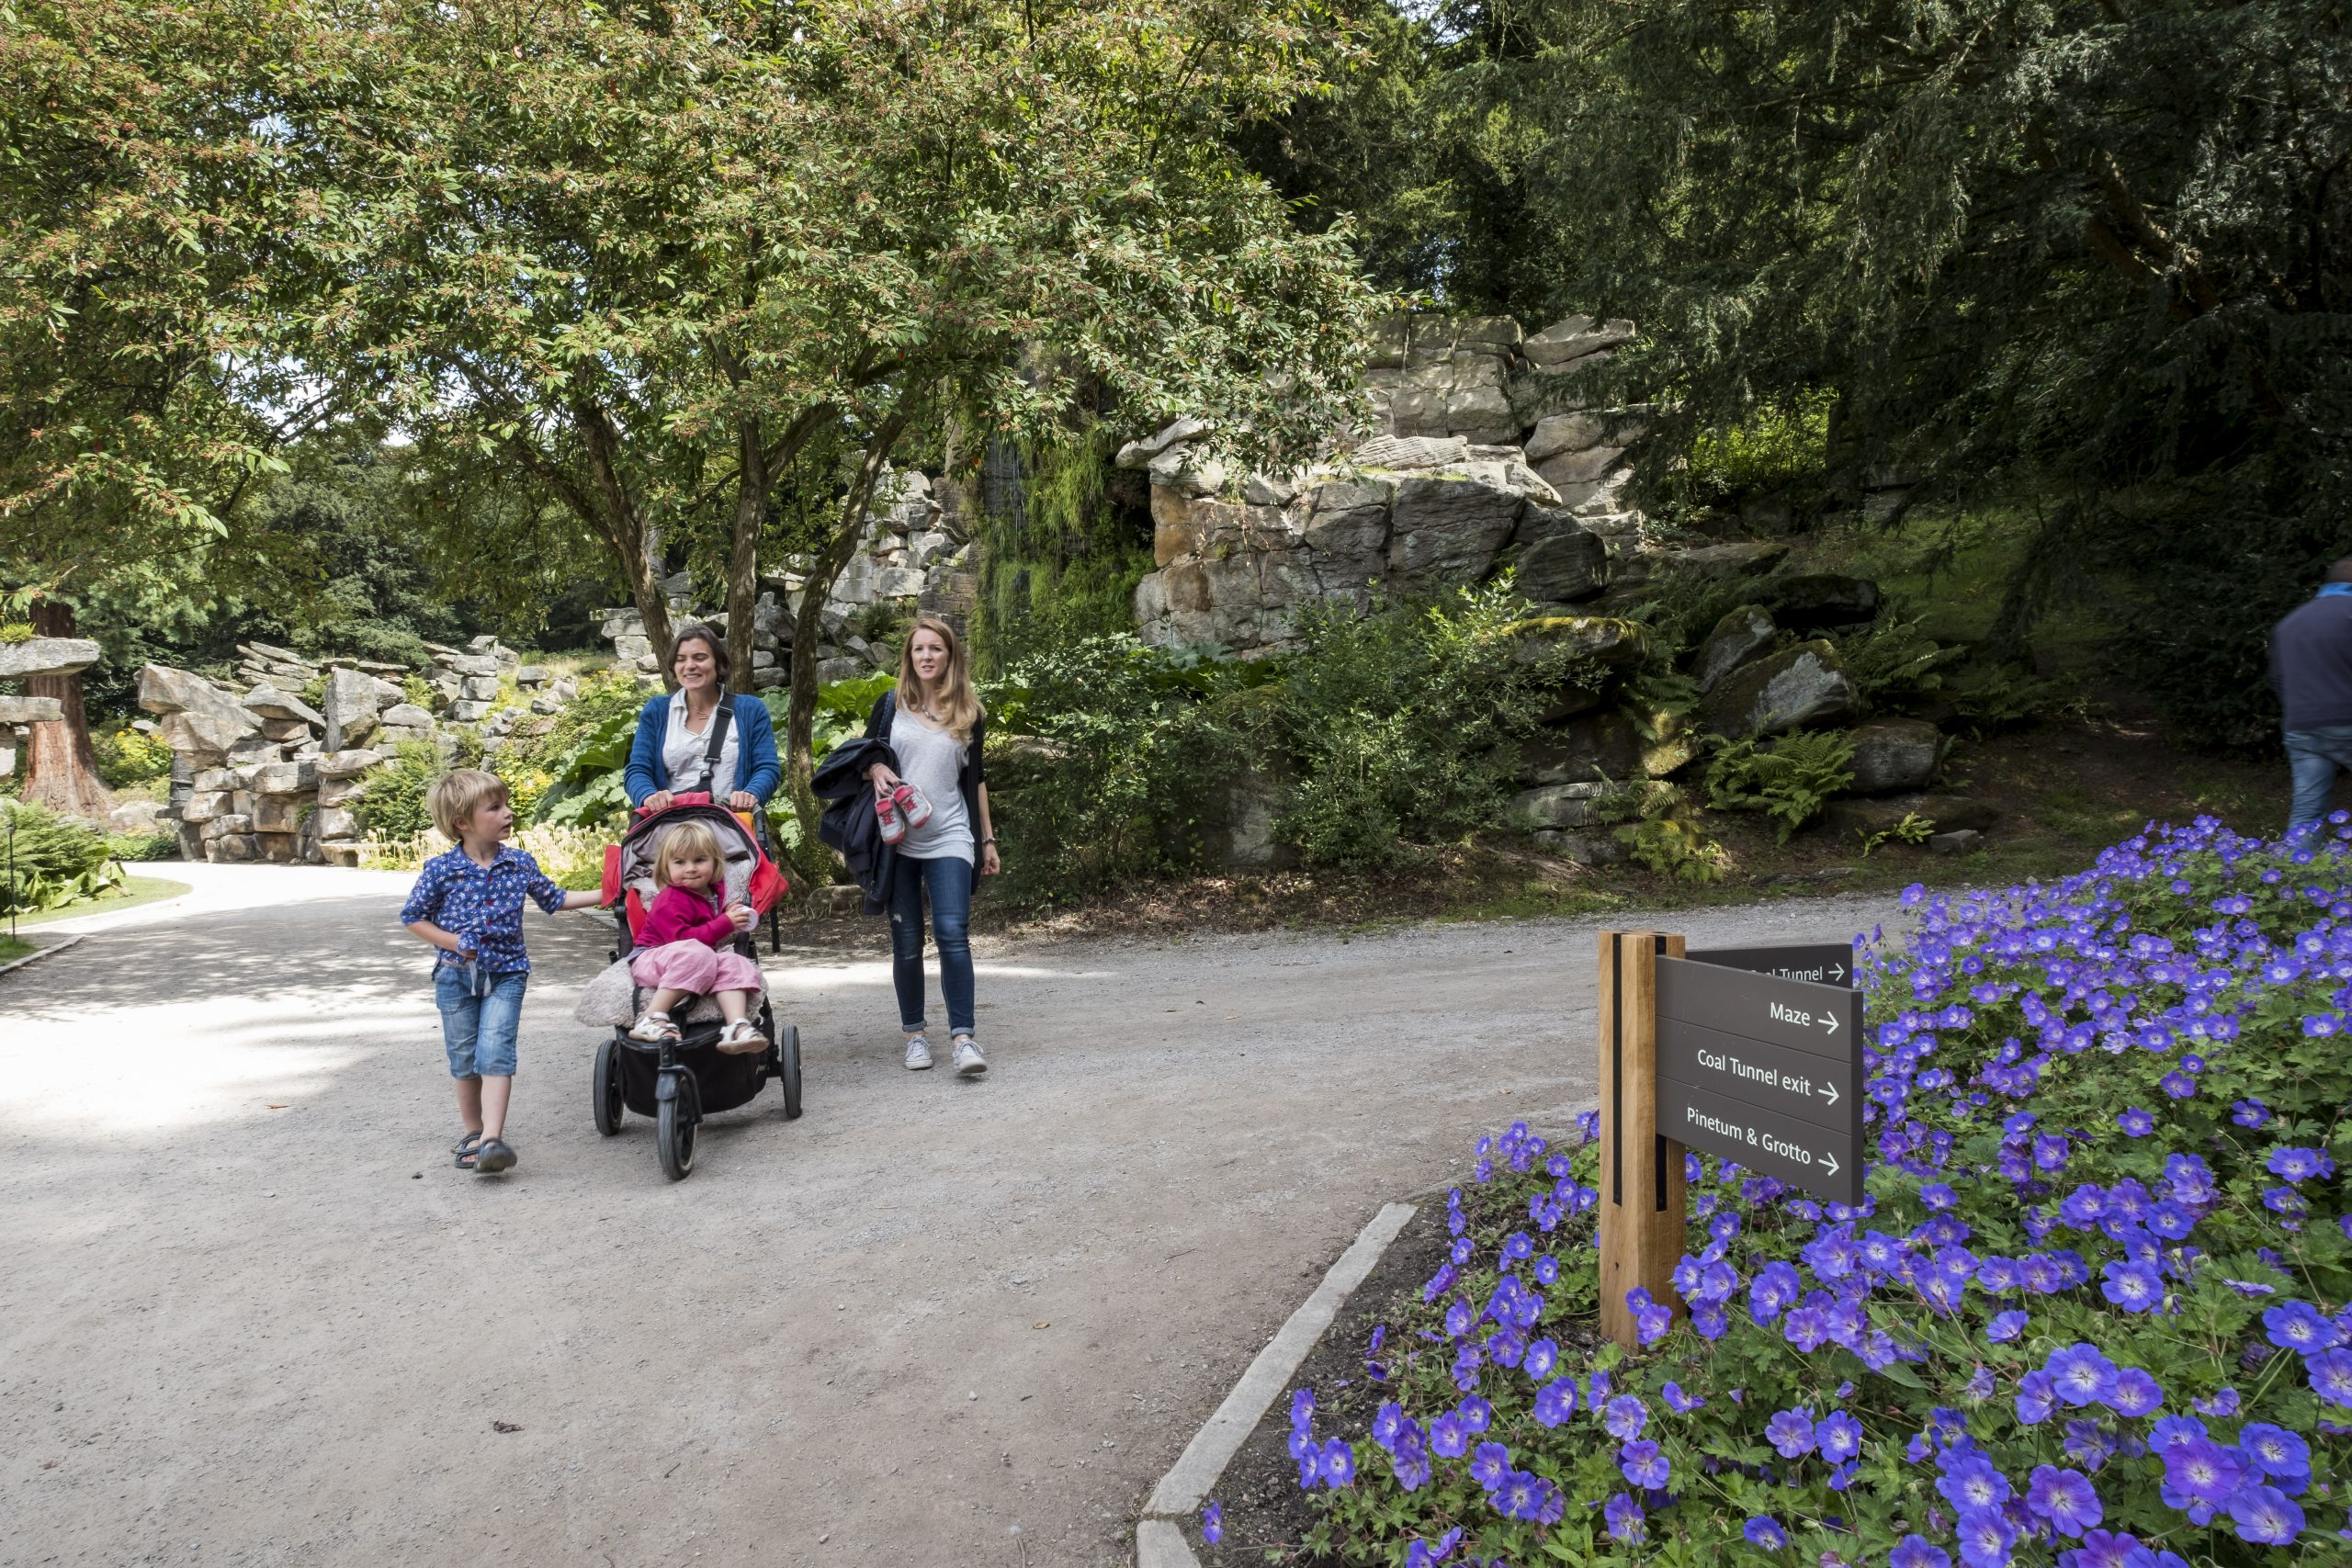 Outdoor view of family at Chatsworth enjoying the gardens (image features ABG Design signage in the foreground.